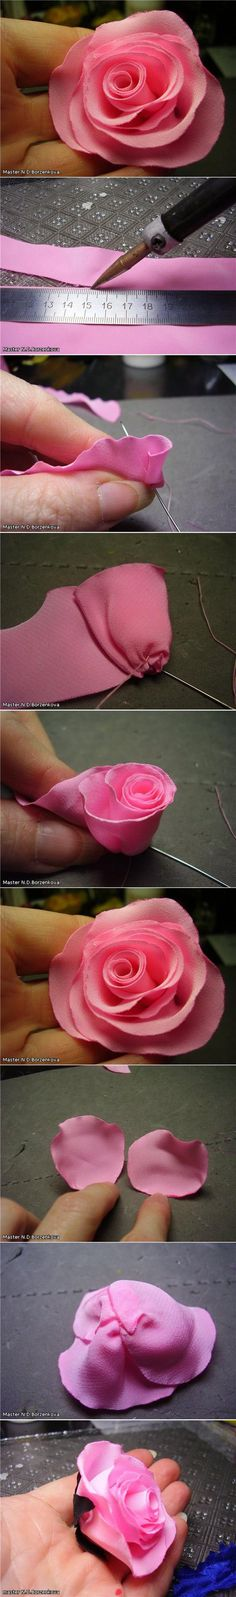 i was just thinking about ribbon roses at work, and here it is, all up in my face